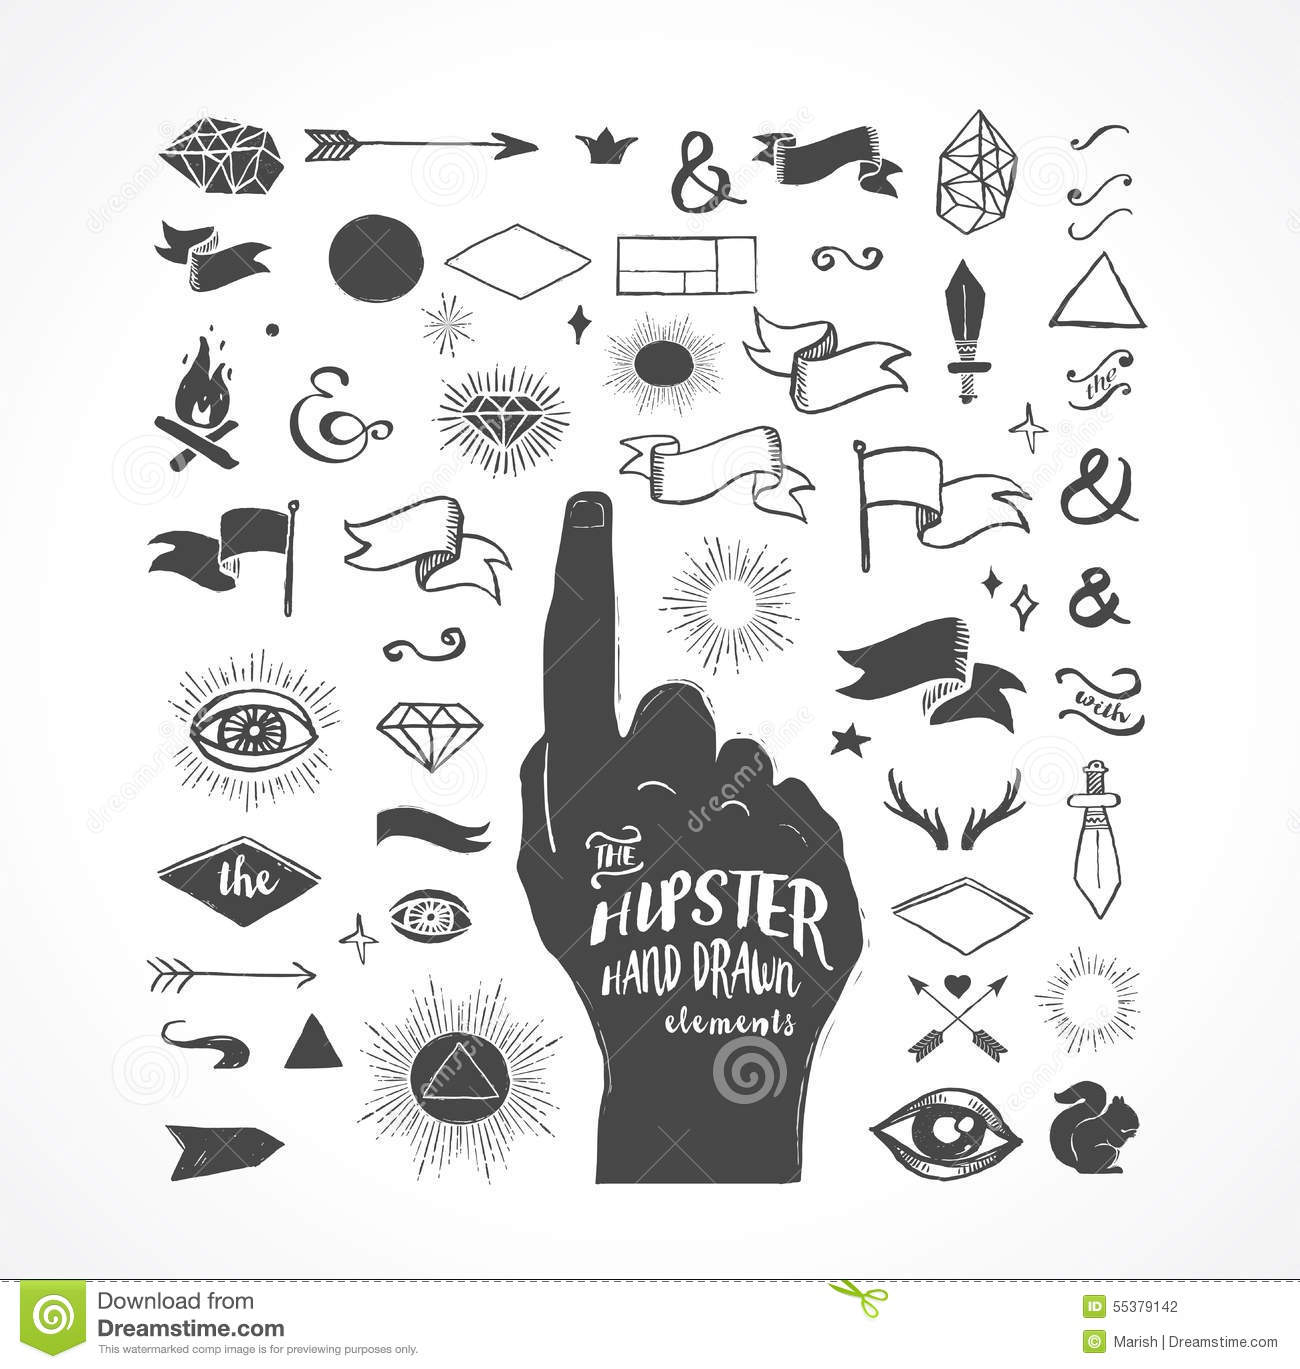 Hipster hand drawn shapes, icons, elements